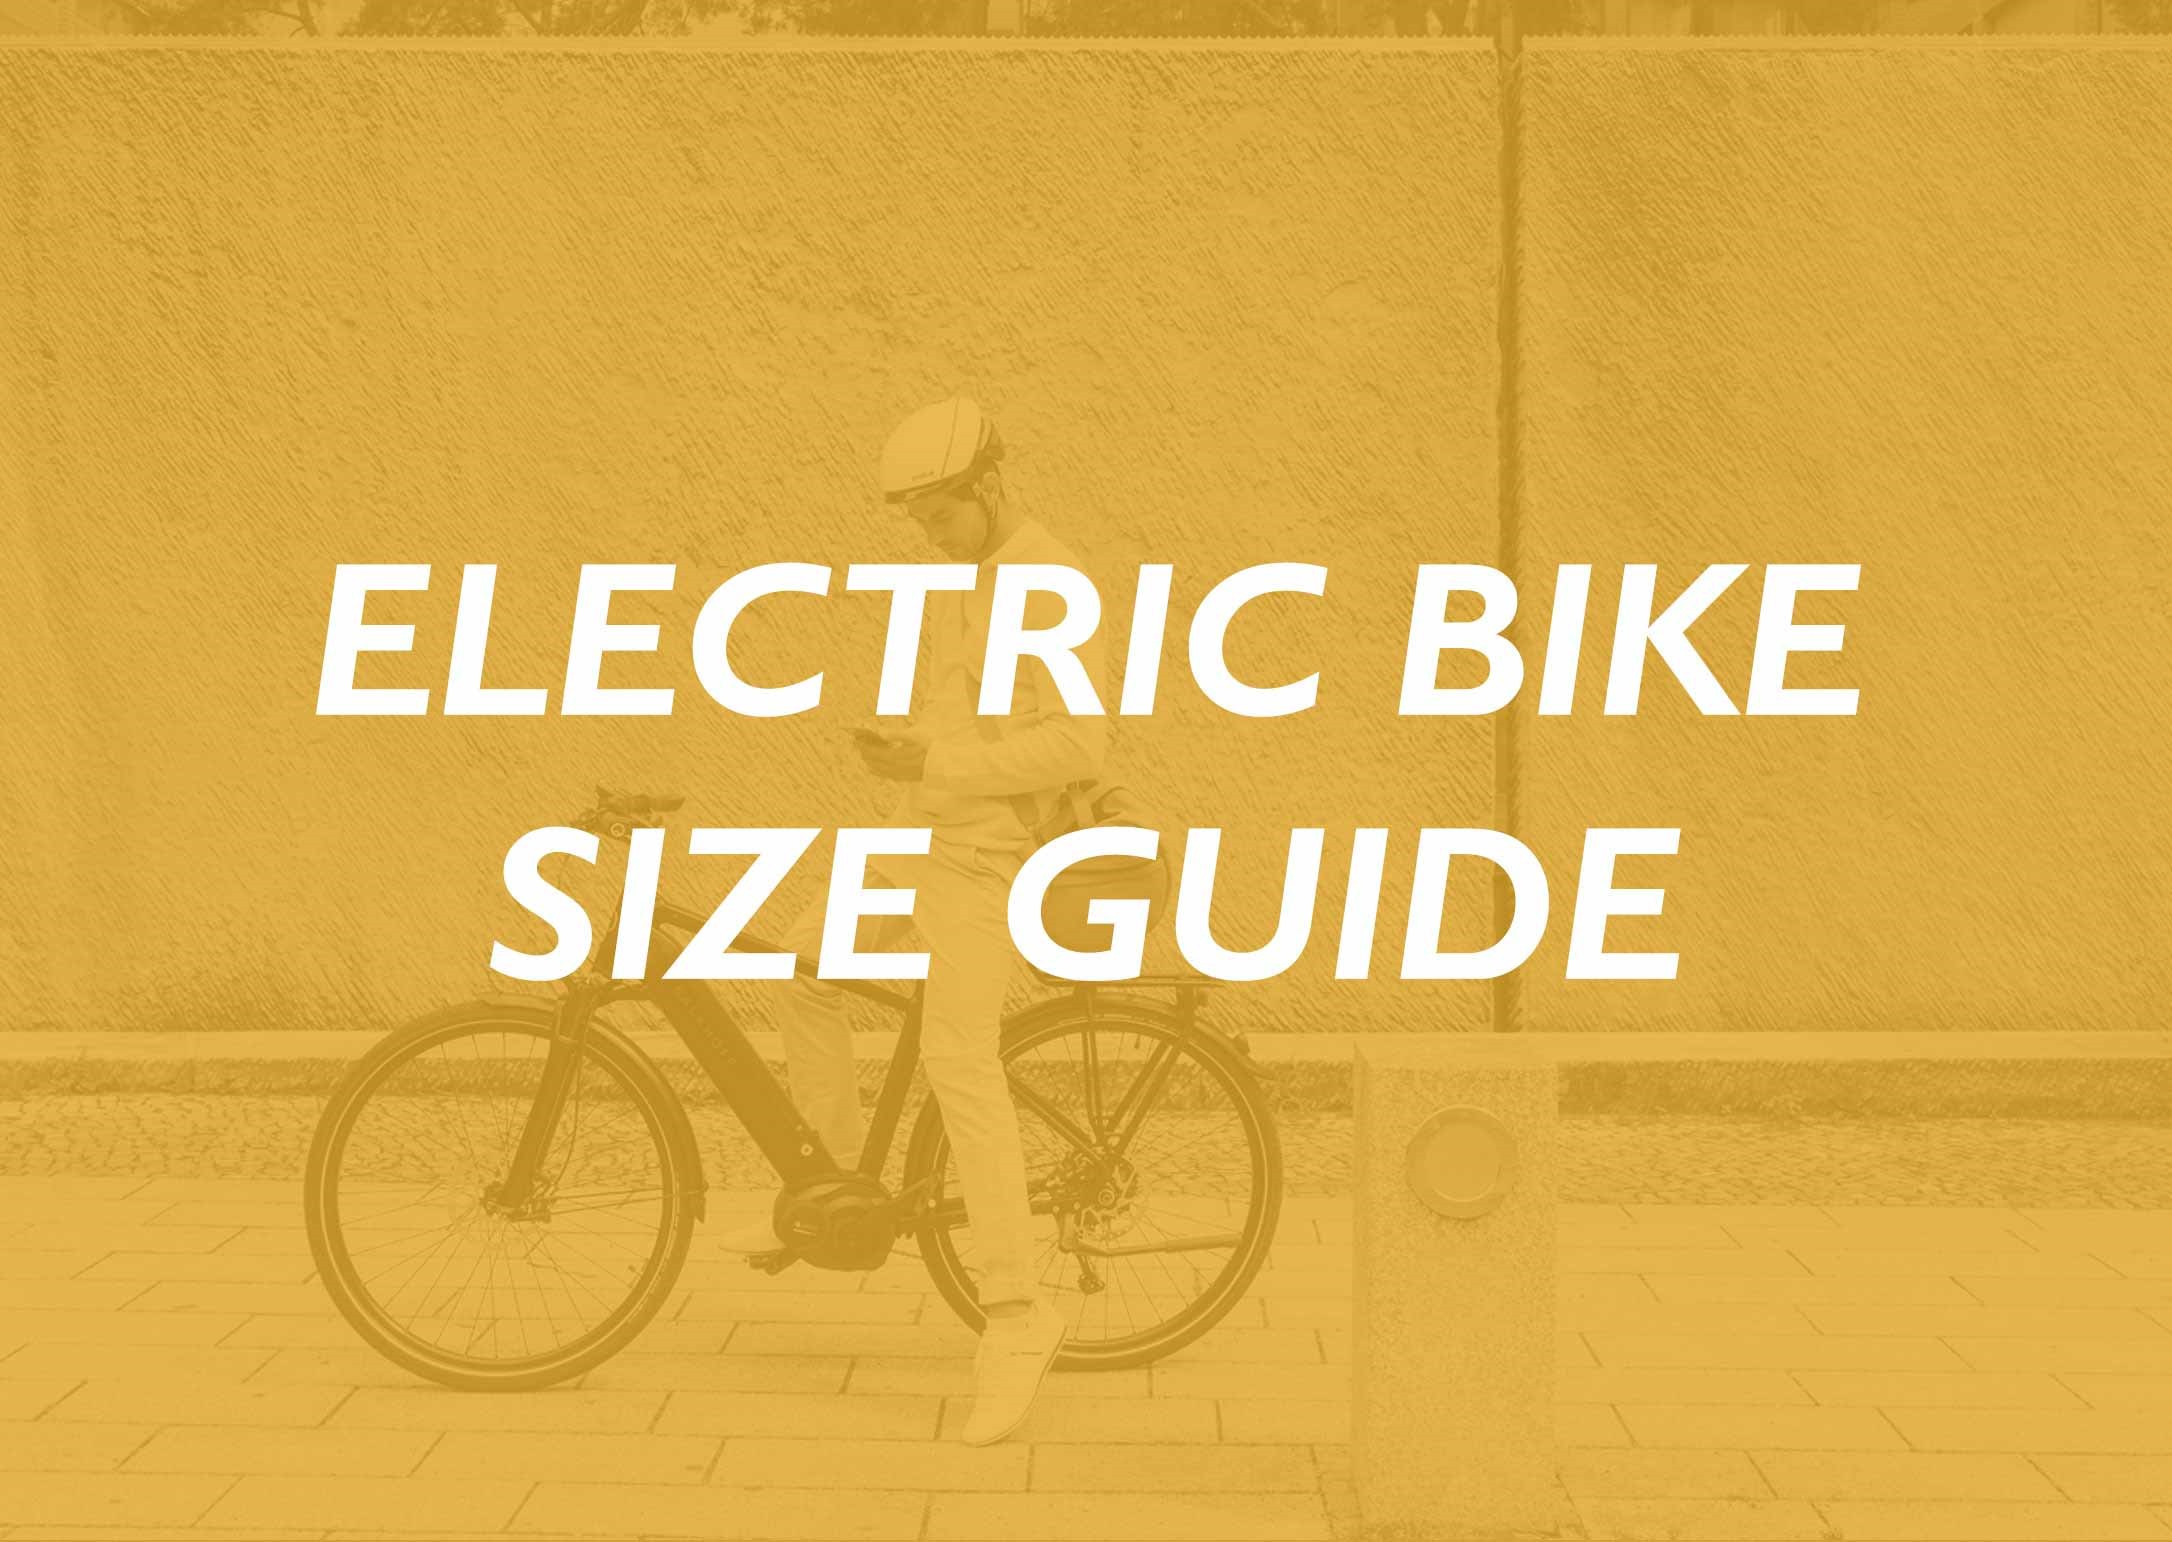 Electric Bike Size Guide